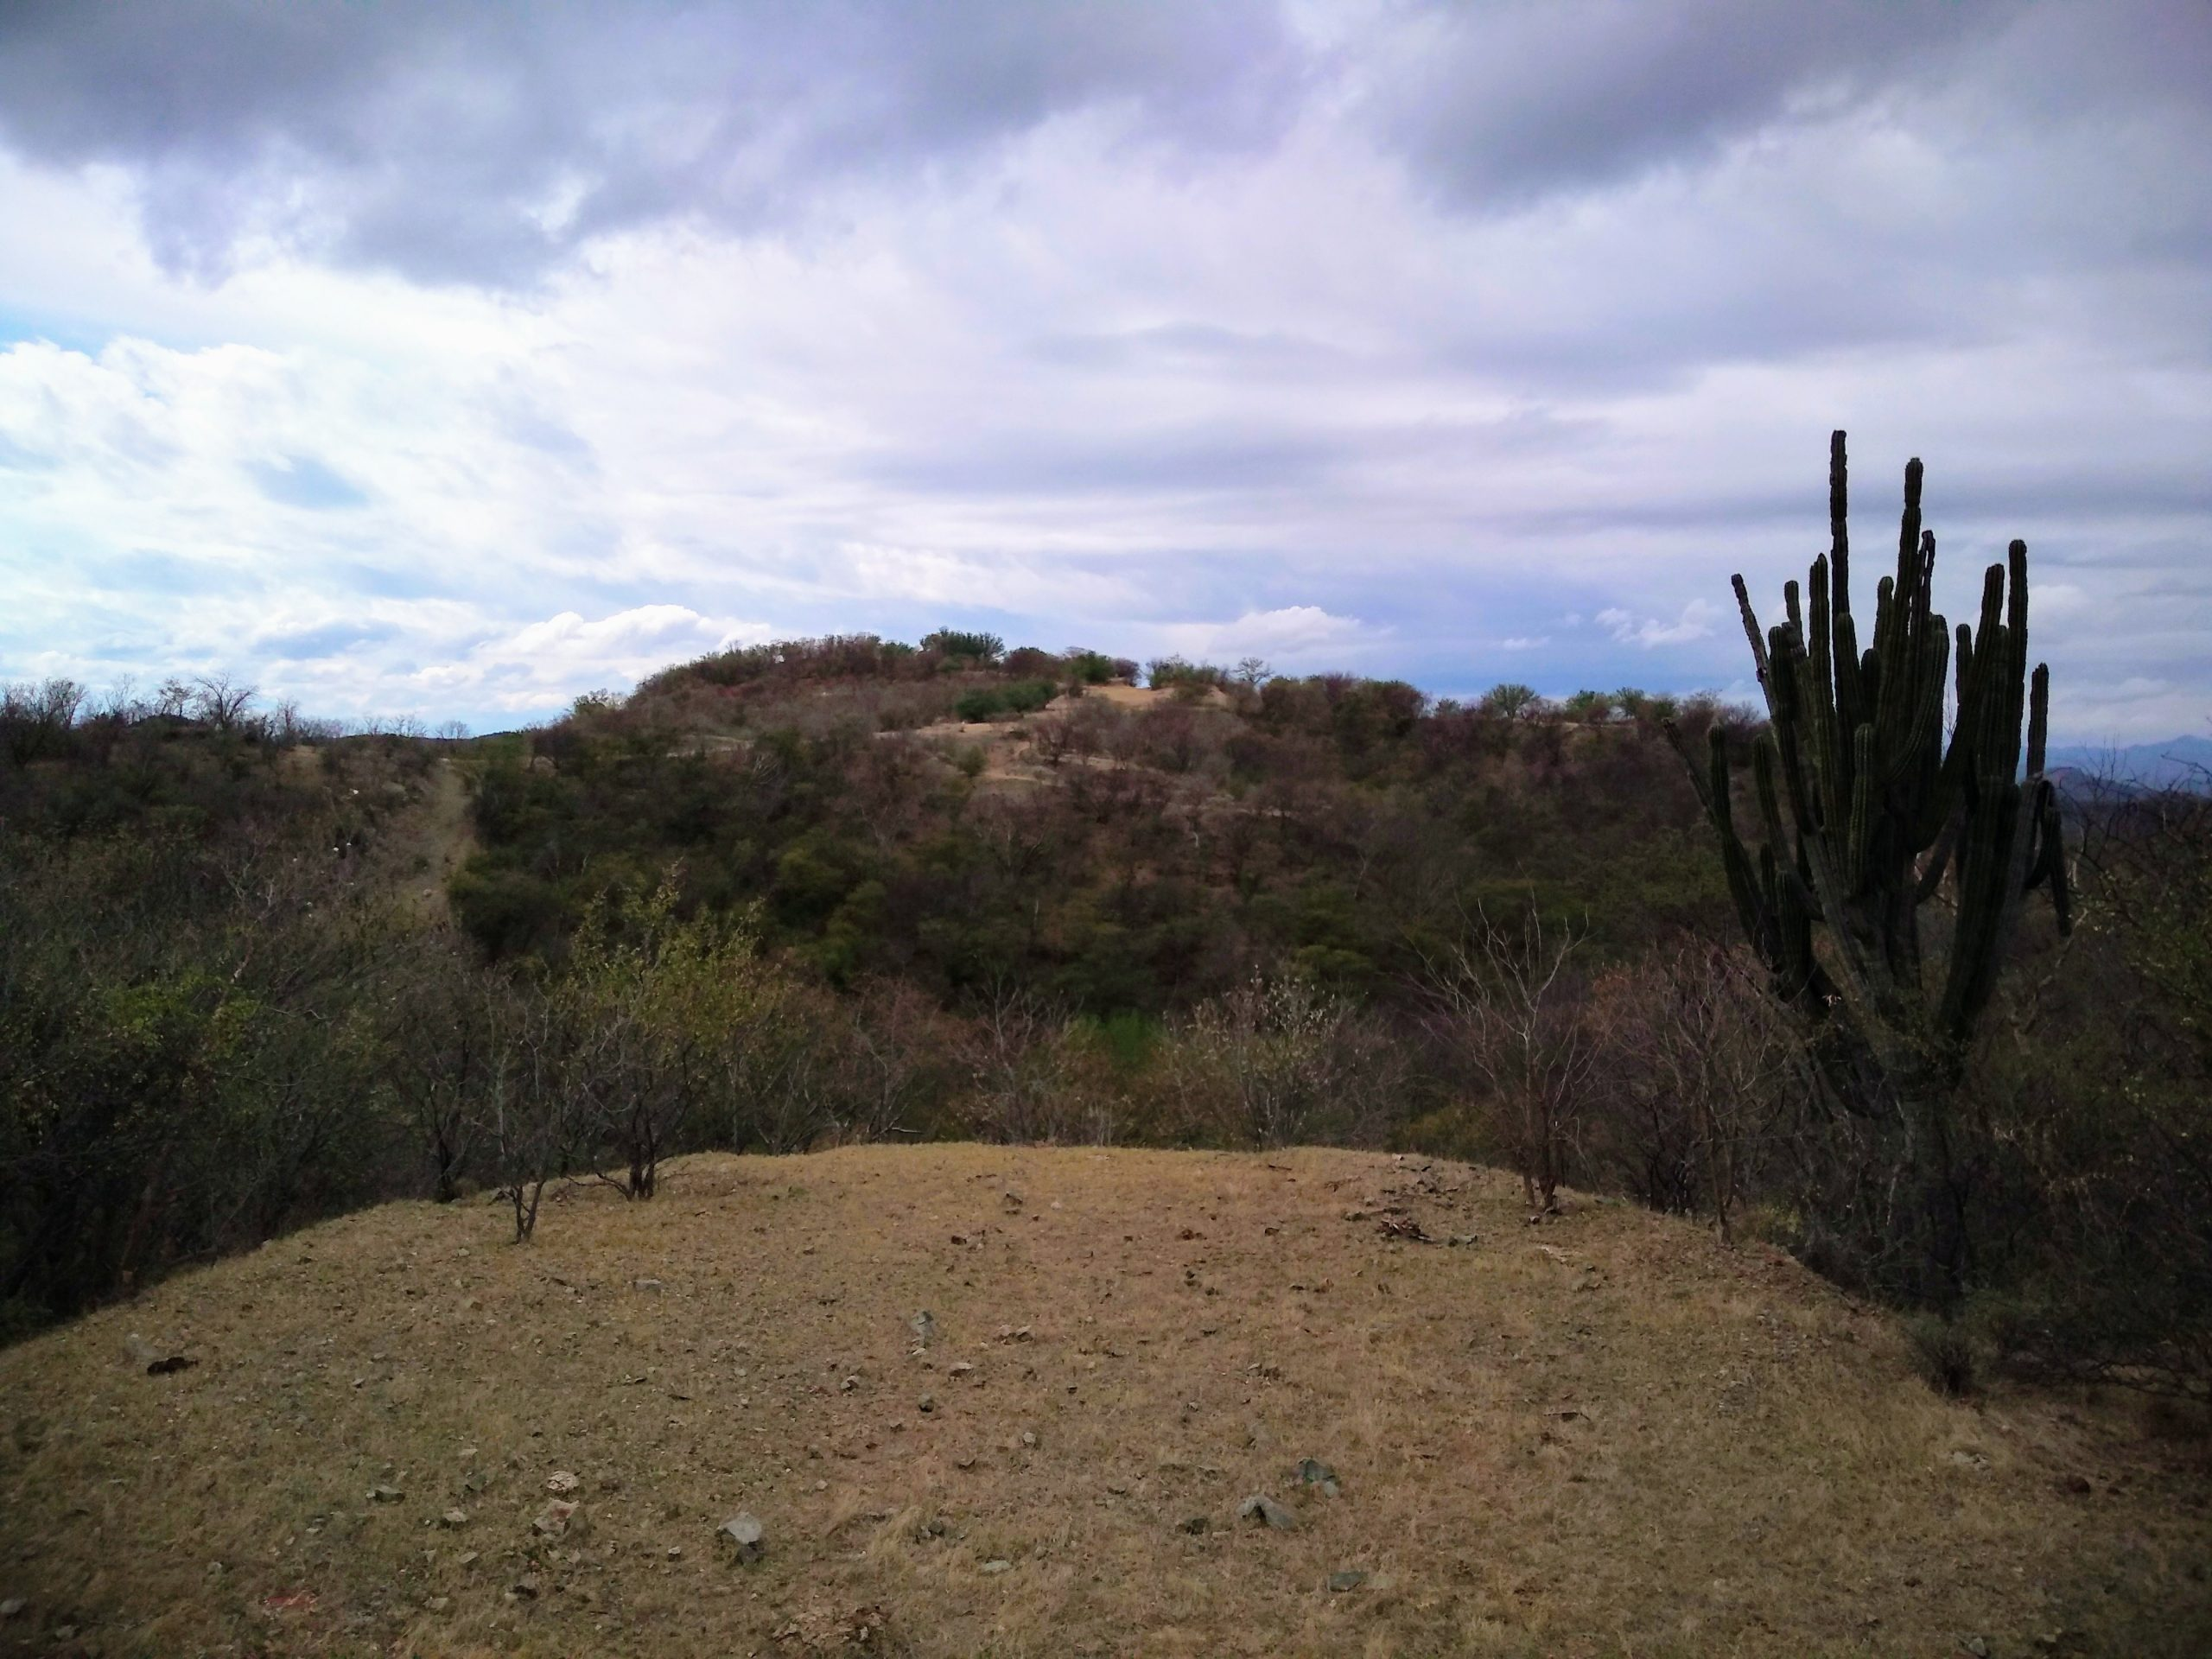 View from 4 Trench looking West to Main Zone at Pilar, with cactus